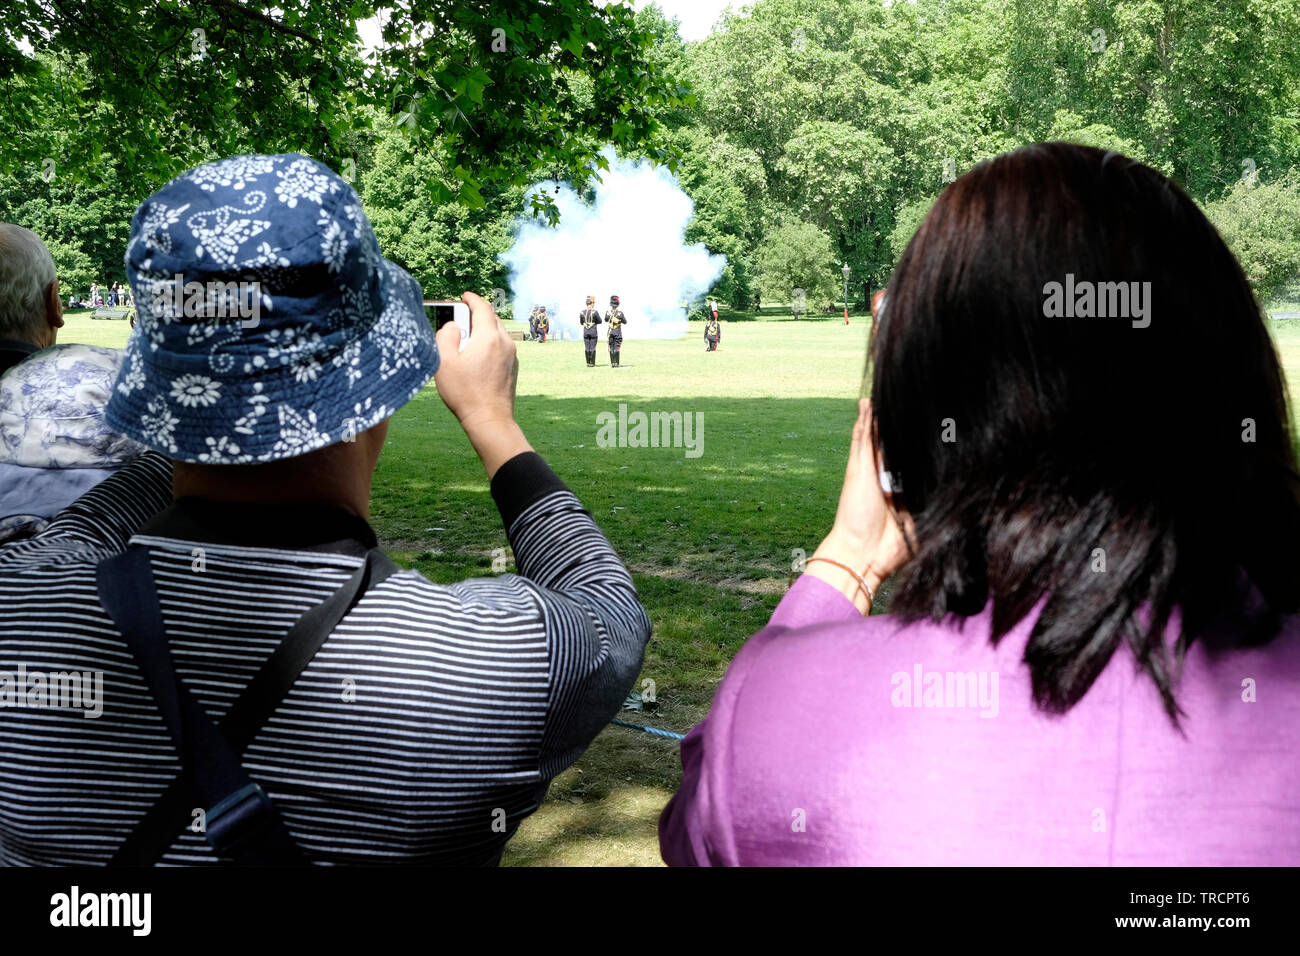 03/06/2019. London, Tourists take photos as Donald Trump is Greeted by gun salutes in Green Park. Credit: Yanice Idir - Stock Image